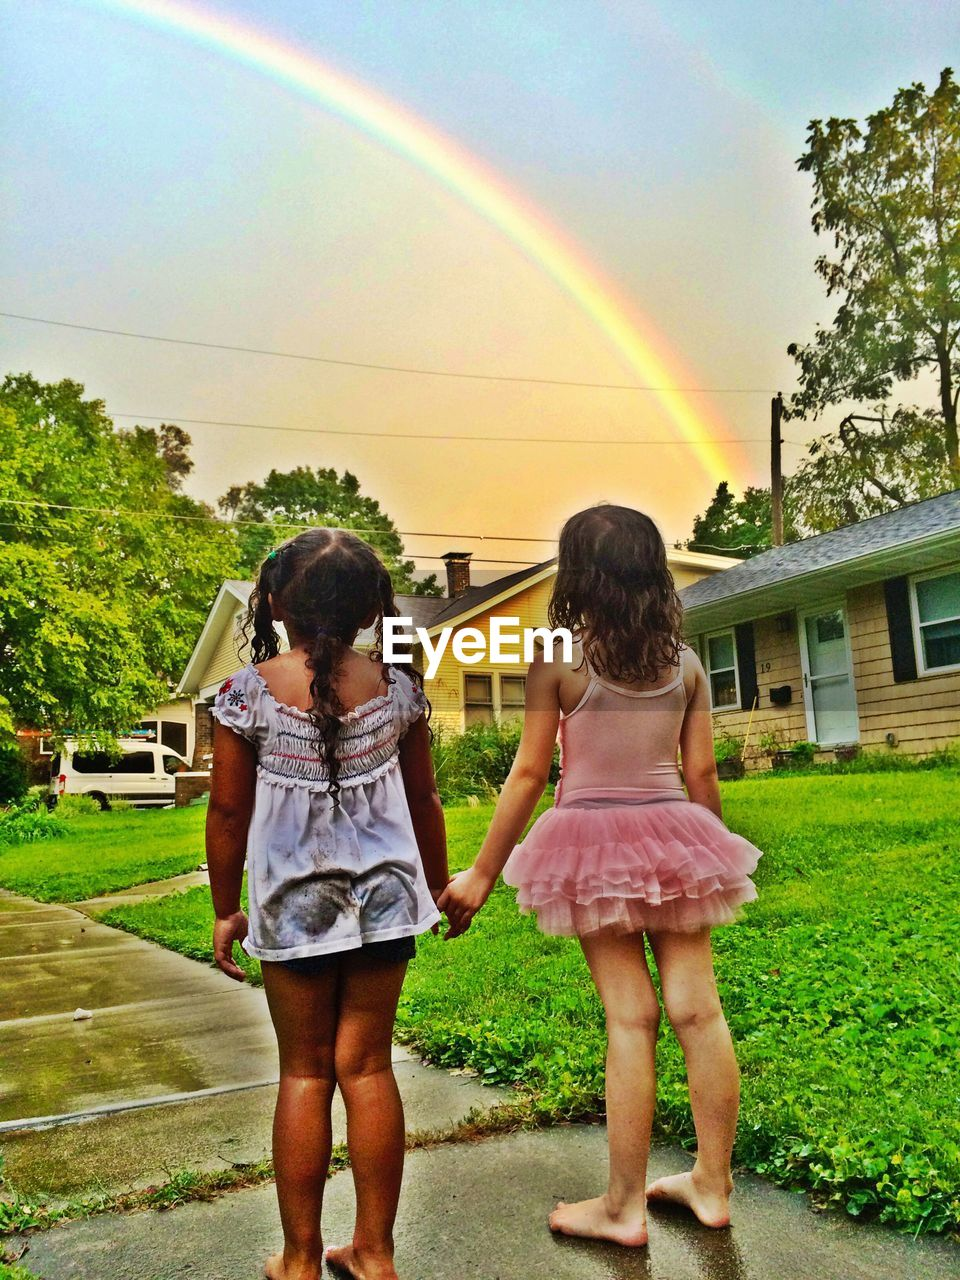 rainbow, real people, full length, building exterior, rear view, built structure, house, leisure activity, two people, tree, casual clothing, standing, girls, togetherness, outdoors, day, bonding, architecture, childhood, happiness, grass, sky, bubble wand